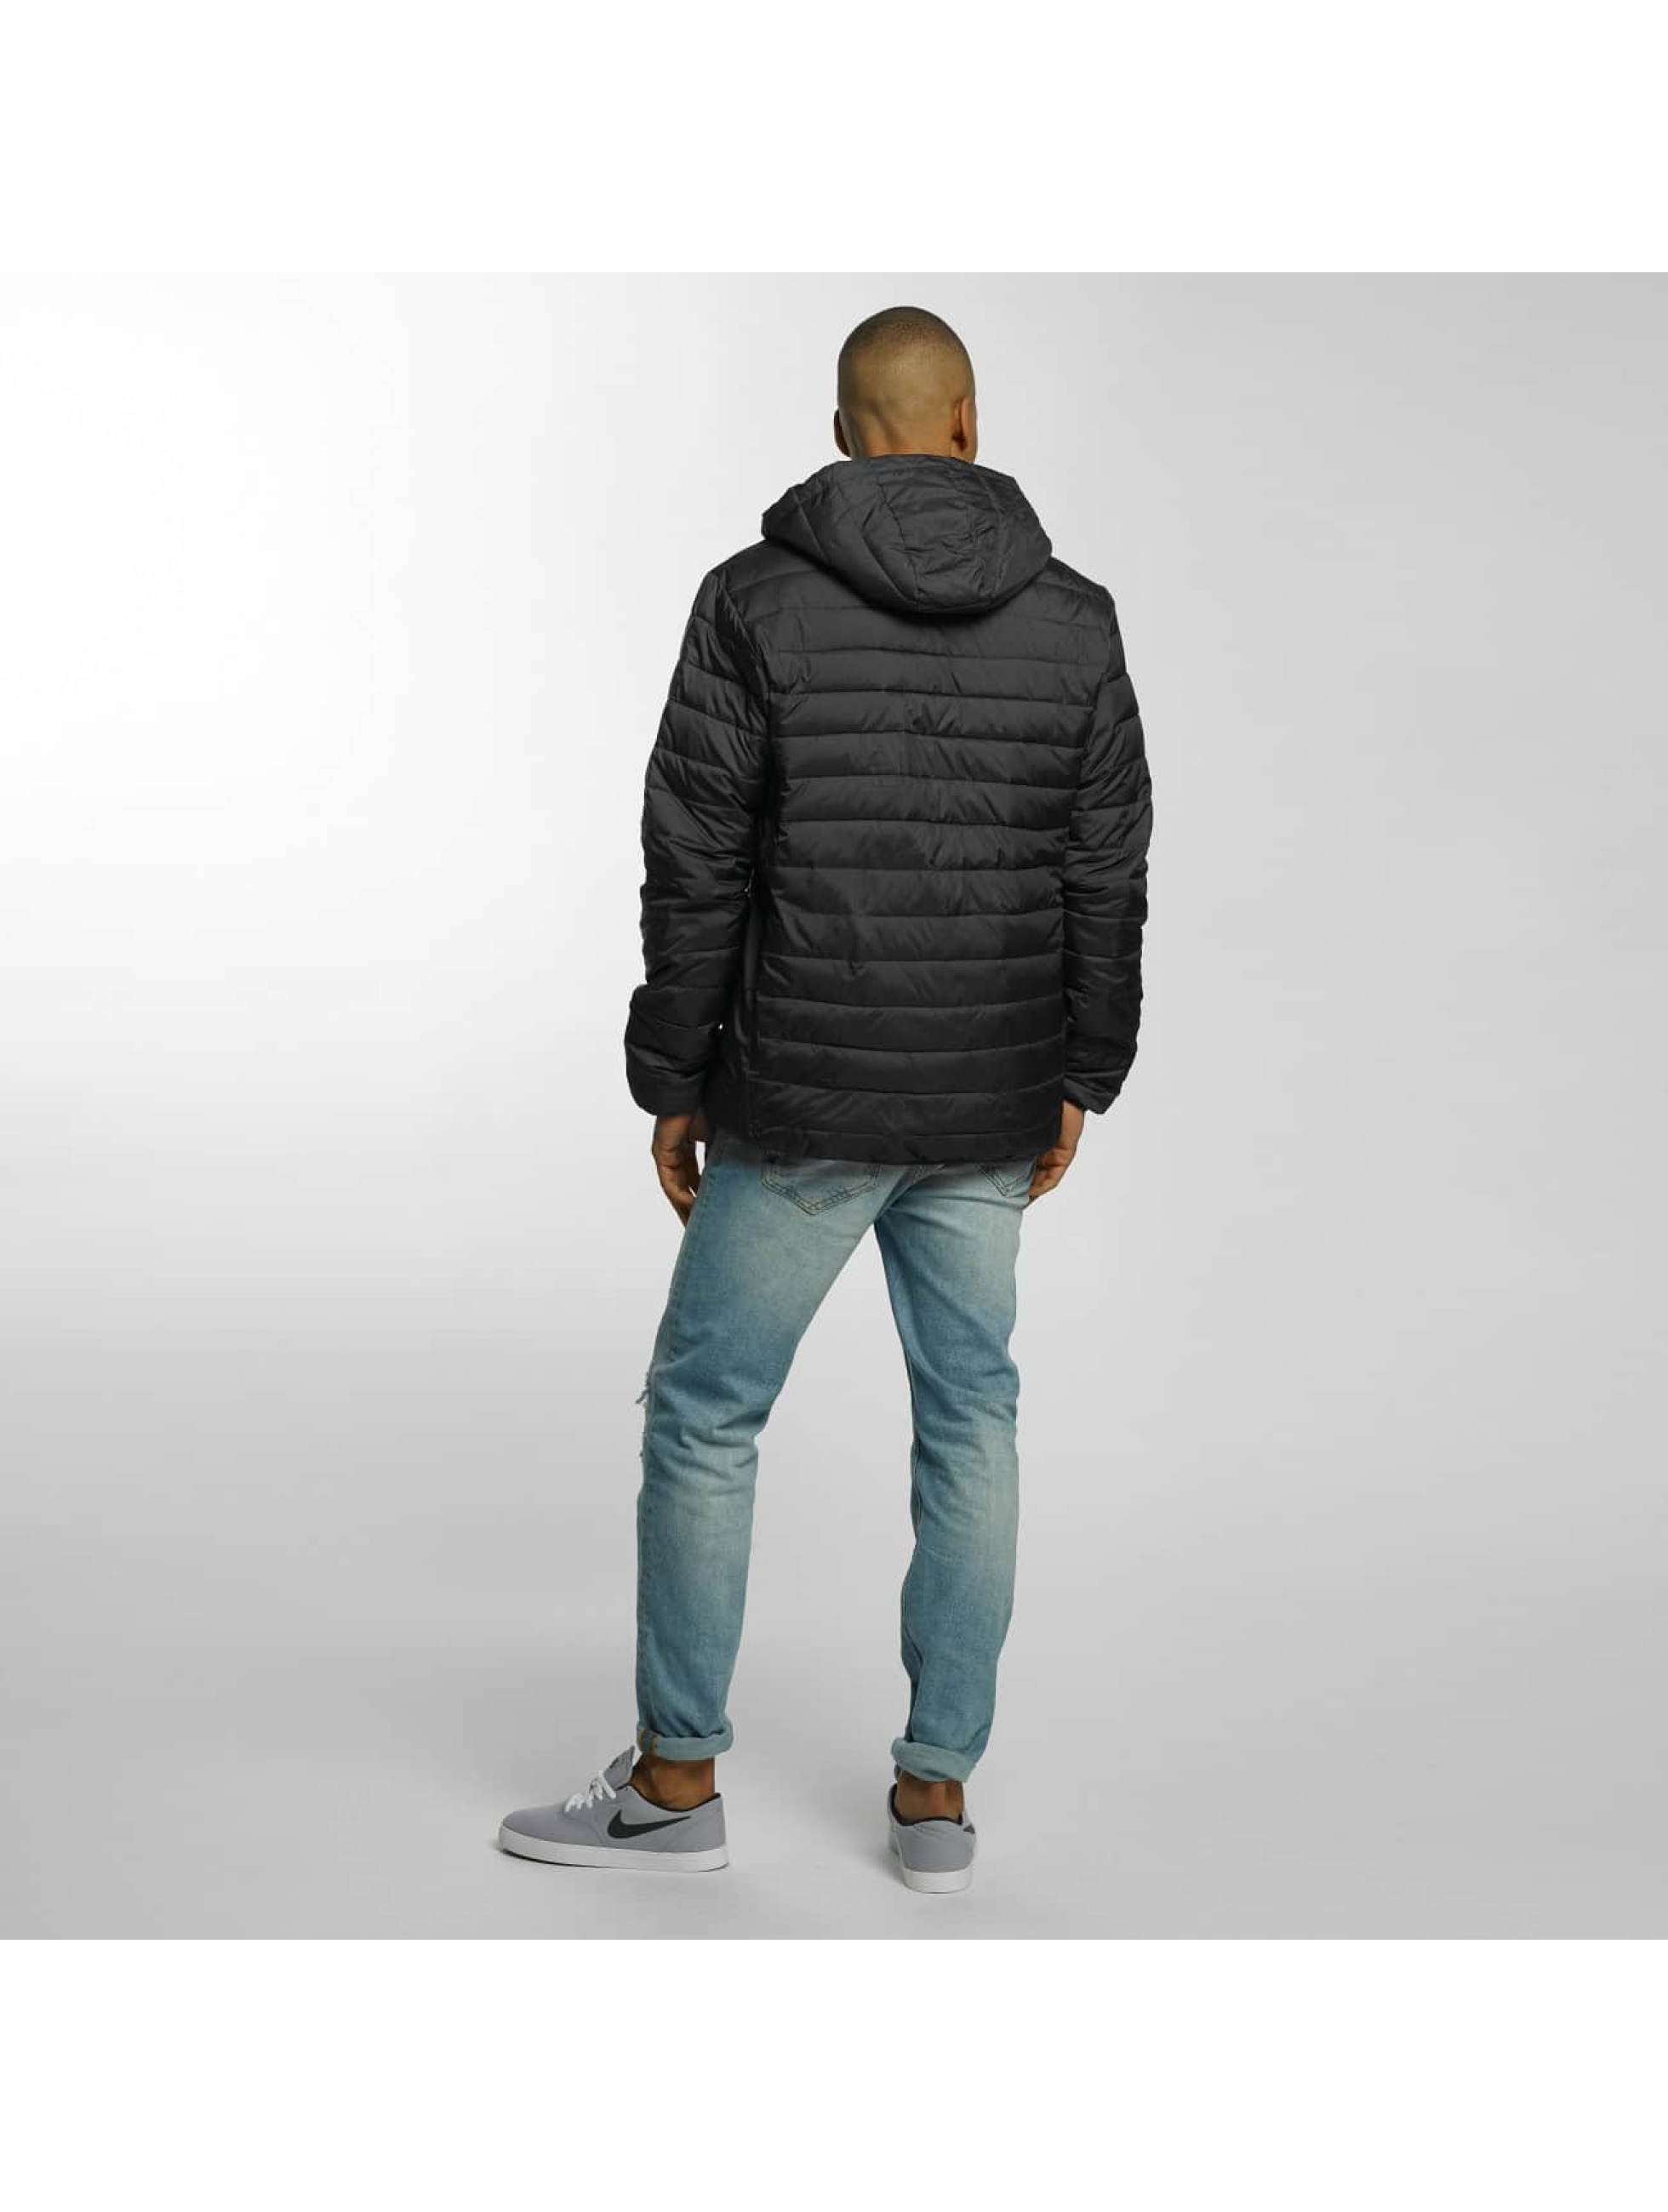 Quiksilver Chaqueta de invierno Everyday Scaly negro